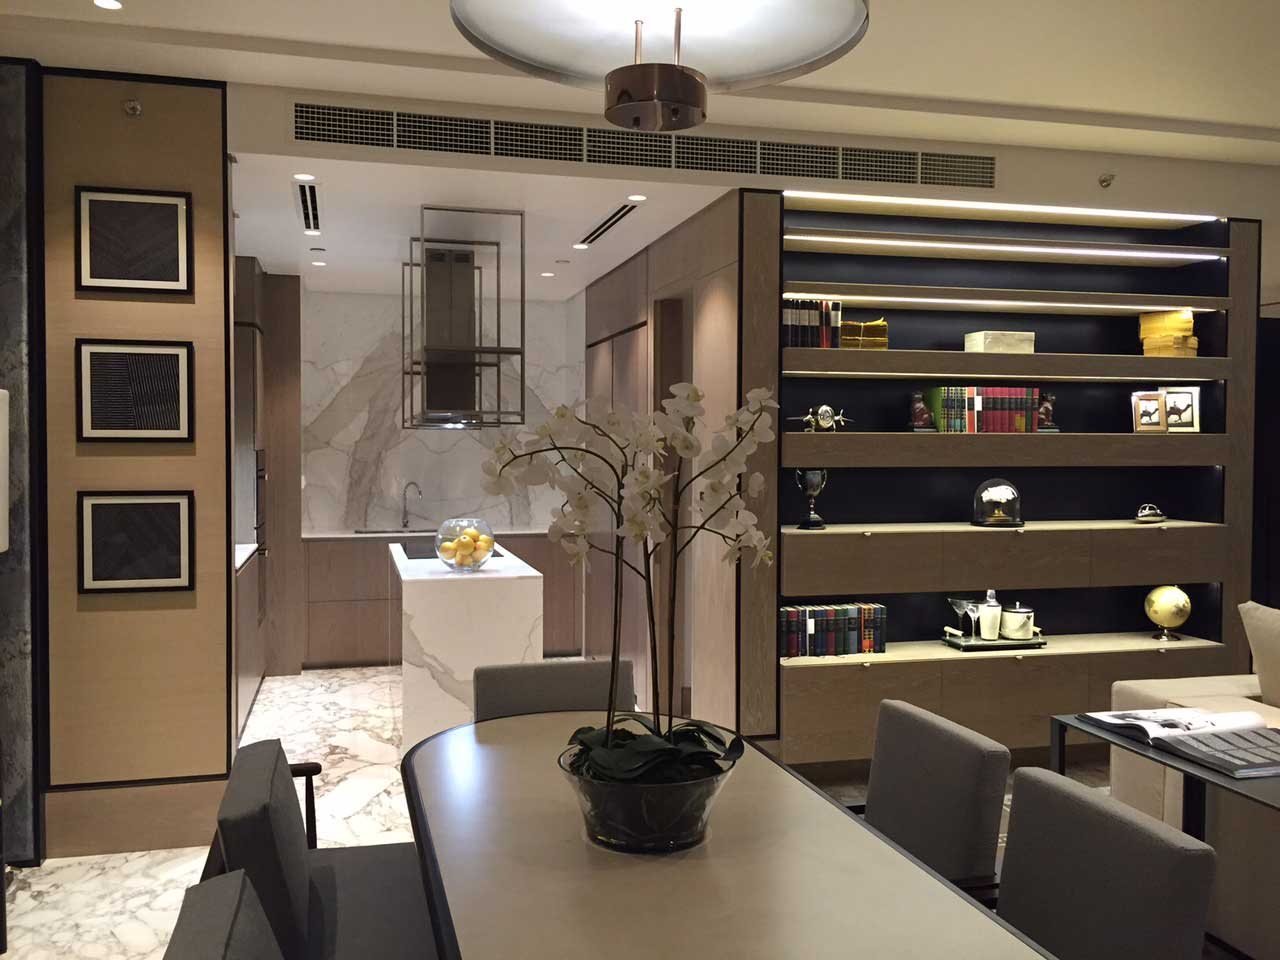 Fit out project waldorf astoria hotel in dubai finasi llc for Design hotel waldorf